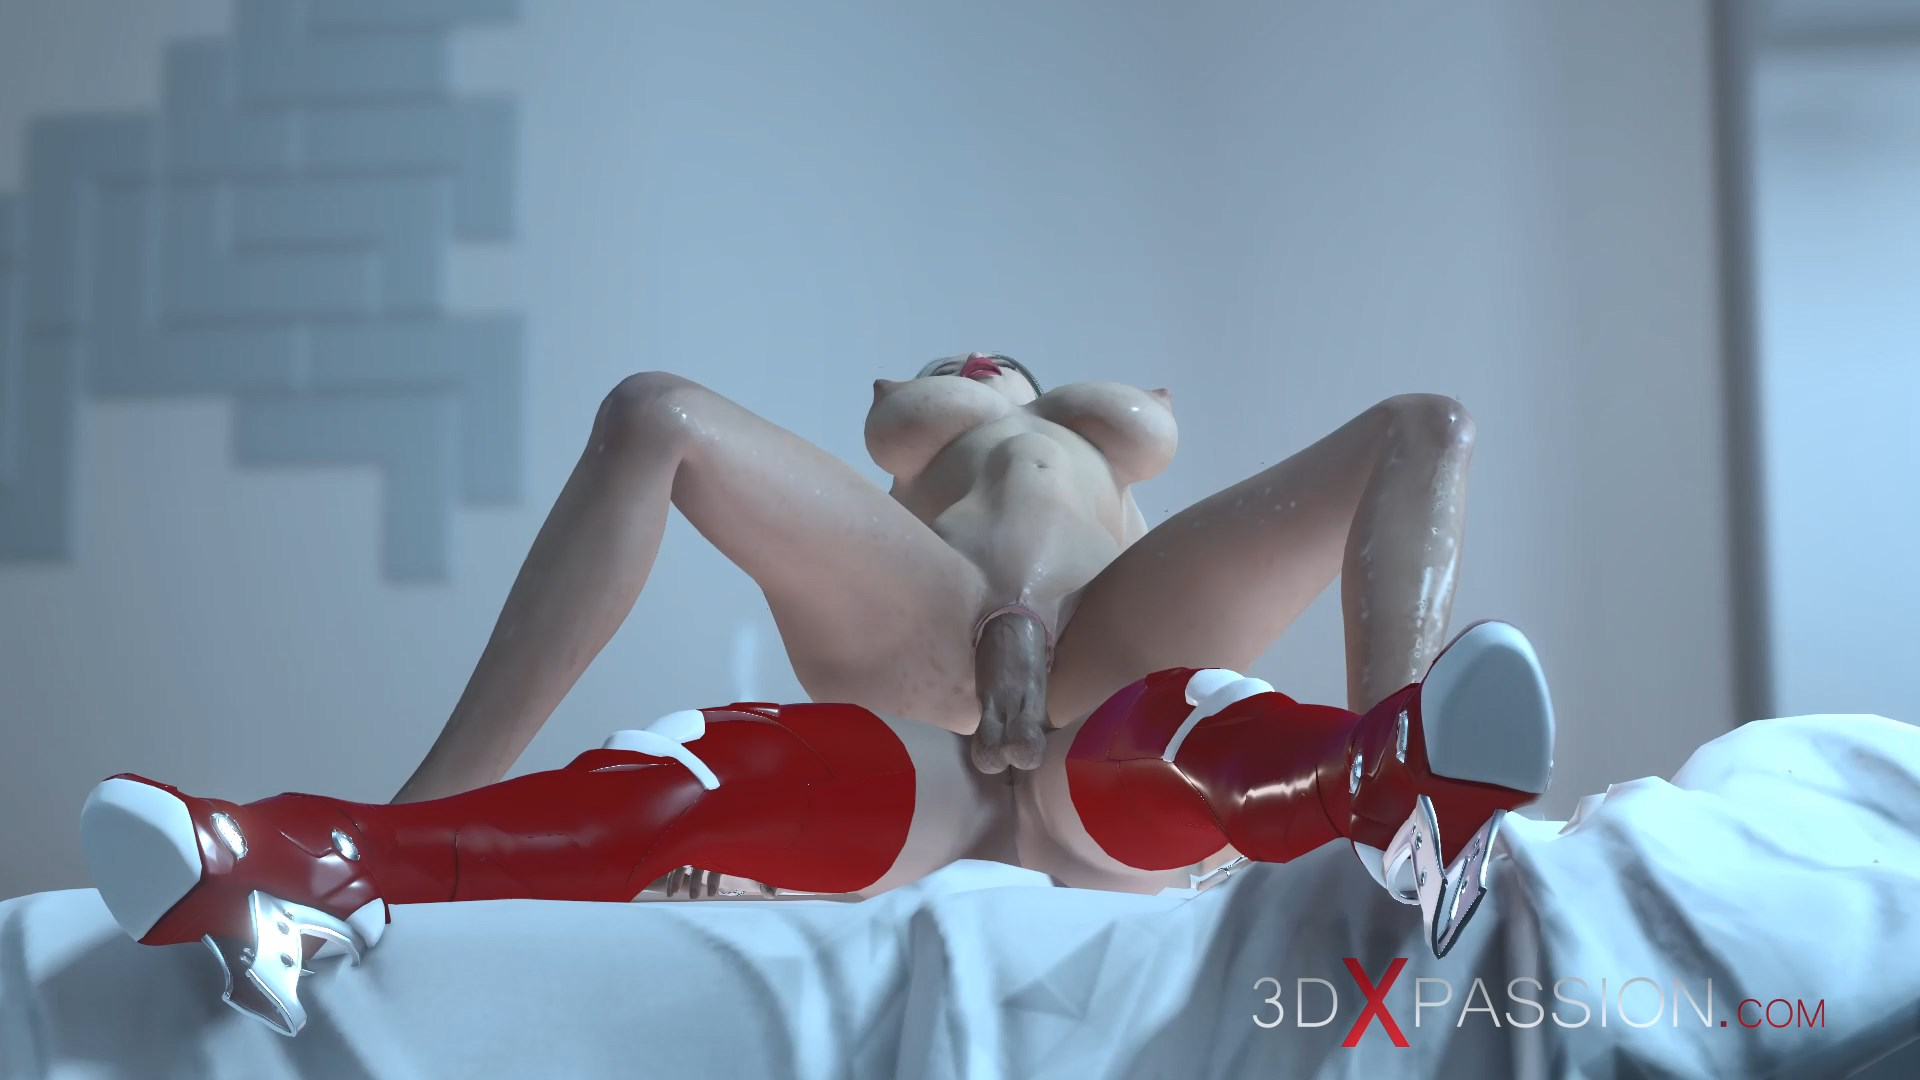 Sexy female sci-fi android reverse cowgirl hot horny girl space station